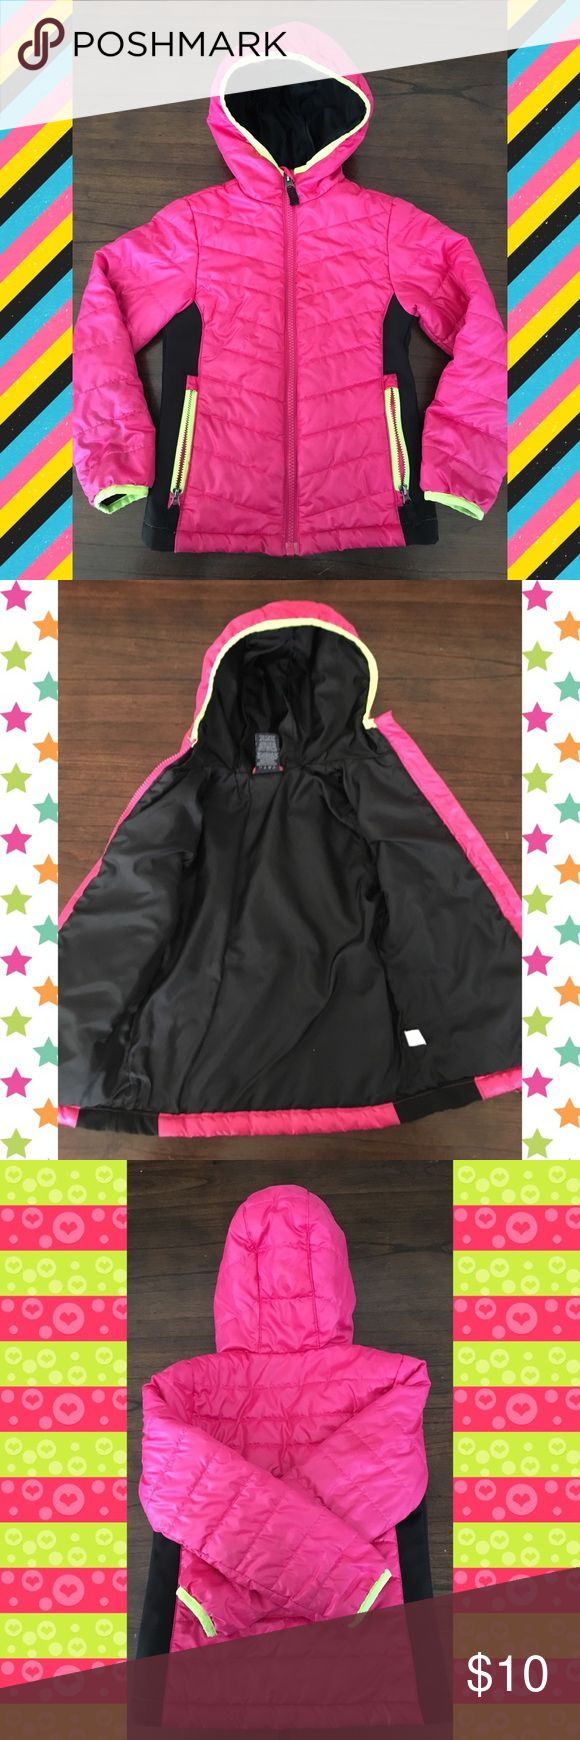 ⭐️⭐️⭐️Hot Pink Parka {Faded Glory} Hooded hot pink parka lined in black for cold winter days. Good used condition with no holes but a few insignificant stains that are hardly noticeable (in photos) on the sleeves mostly. Faded Glory size XS will fit 4T, 5T & sizes 4 & 5. Faded Glory Jackets & Coats Puffers